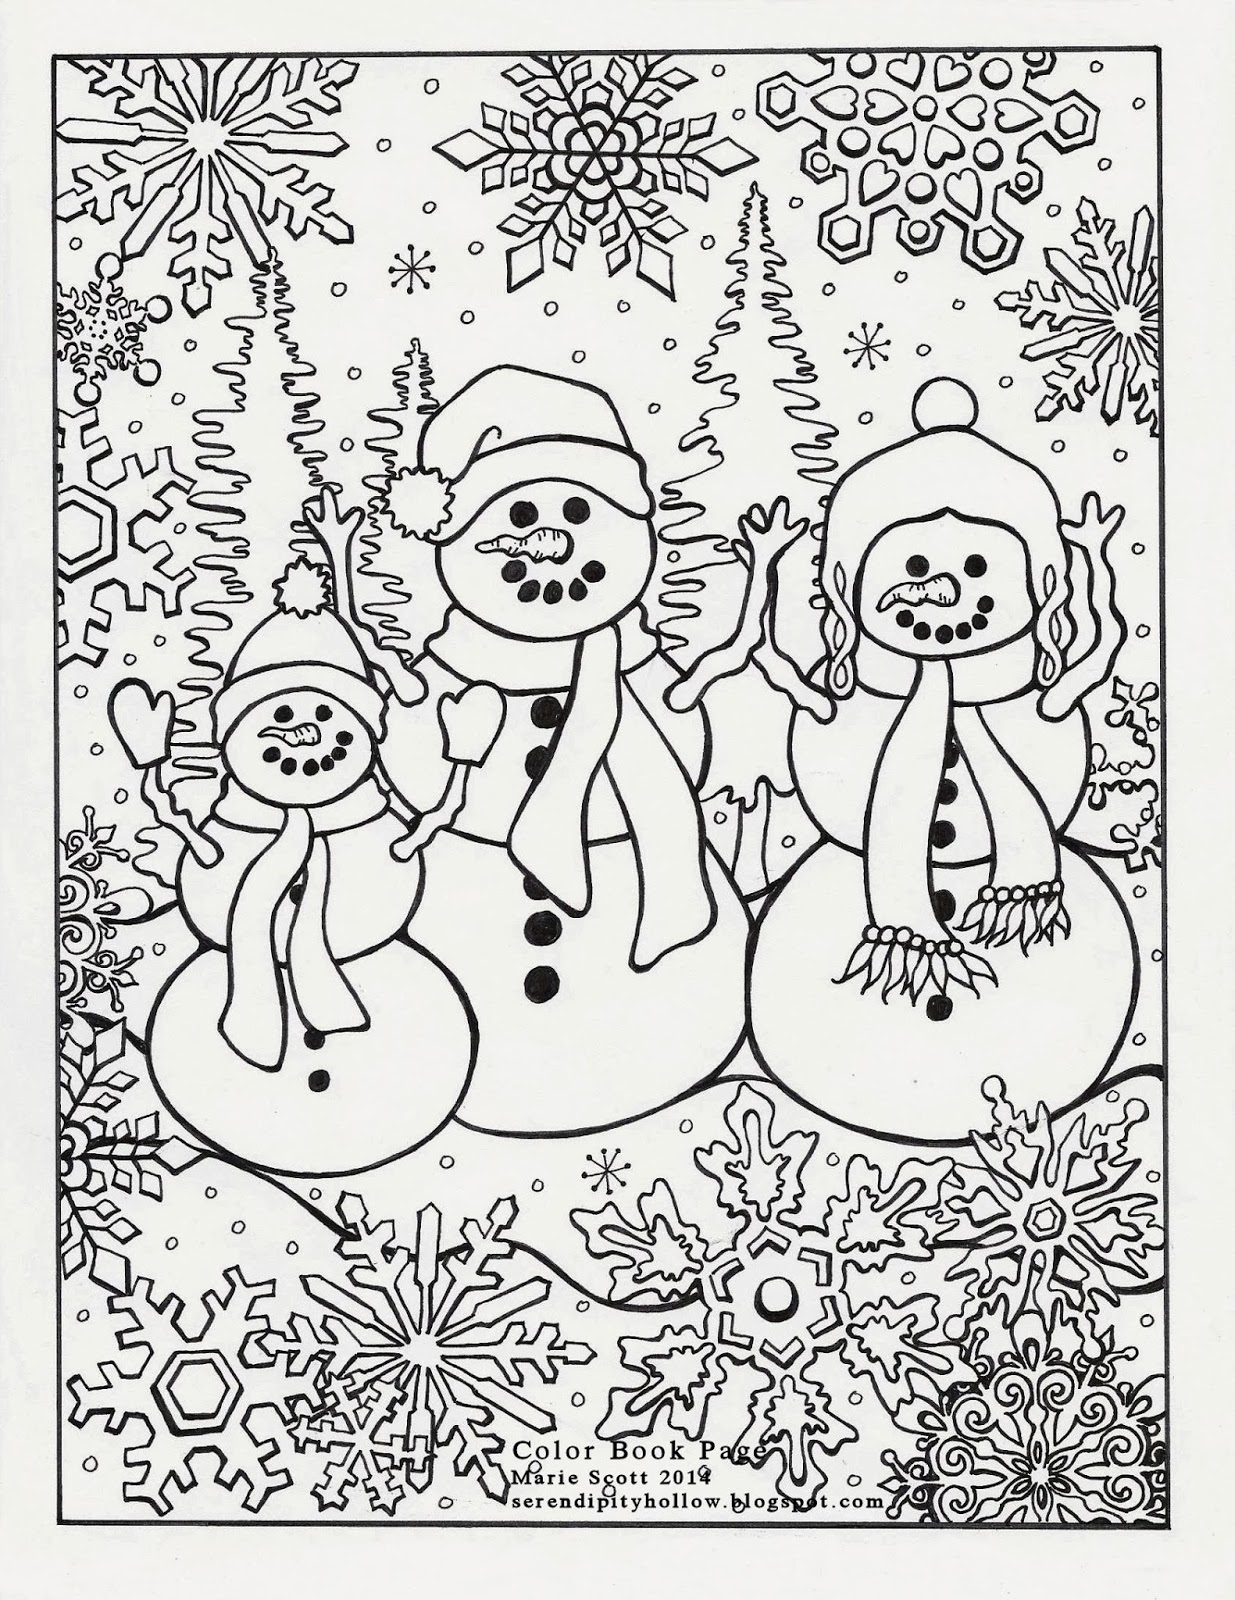 Serendipity Hollow: Winter Coloring Book Page